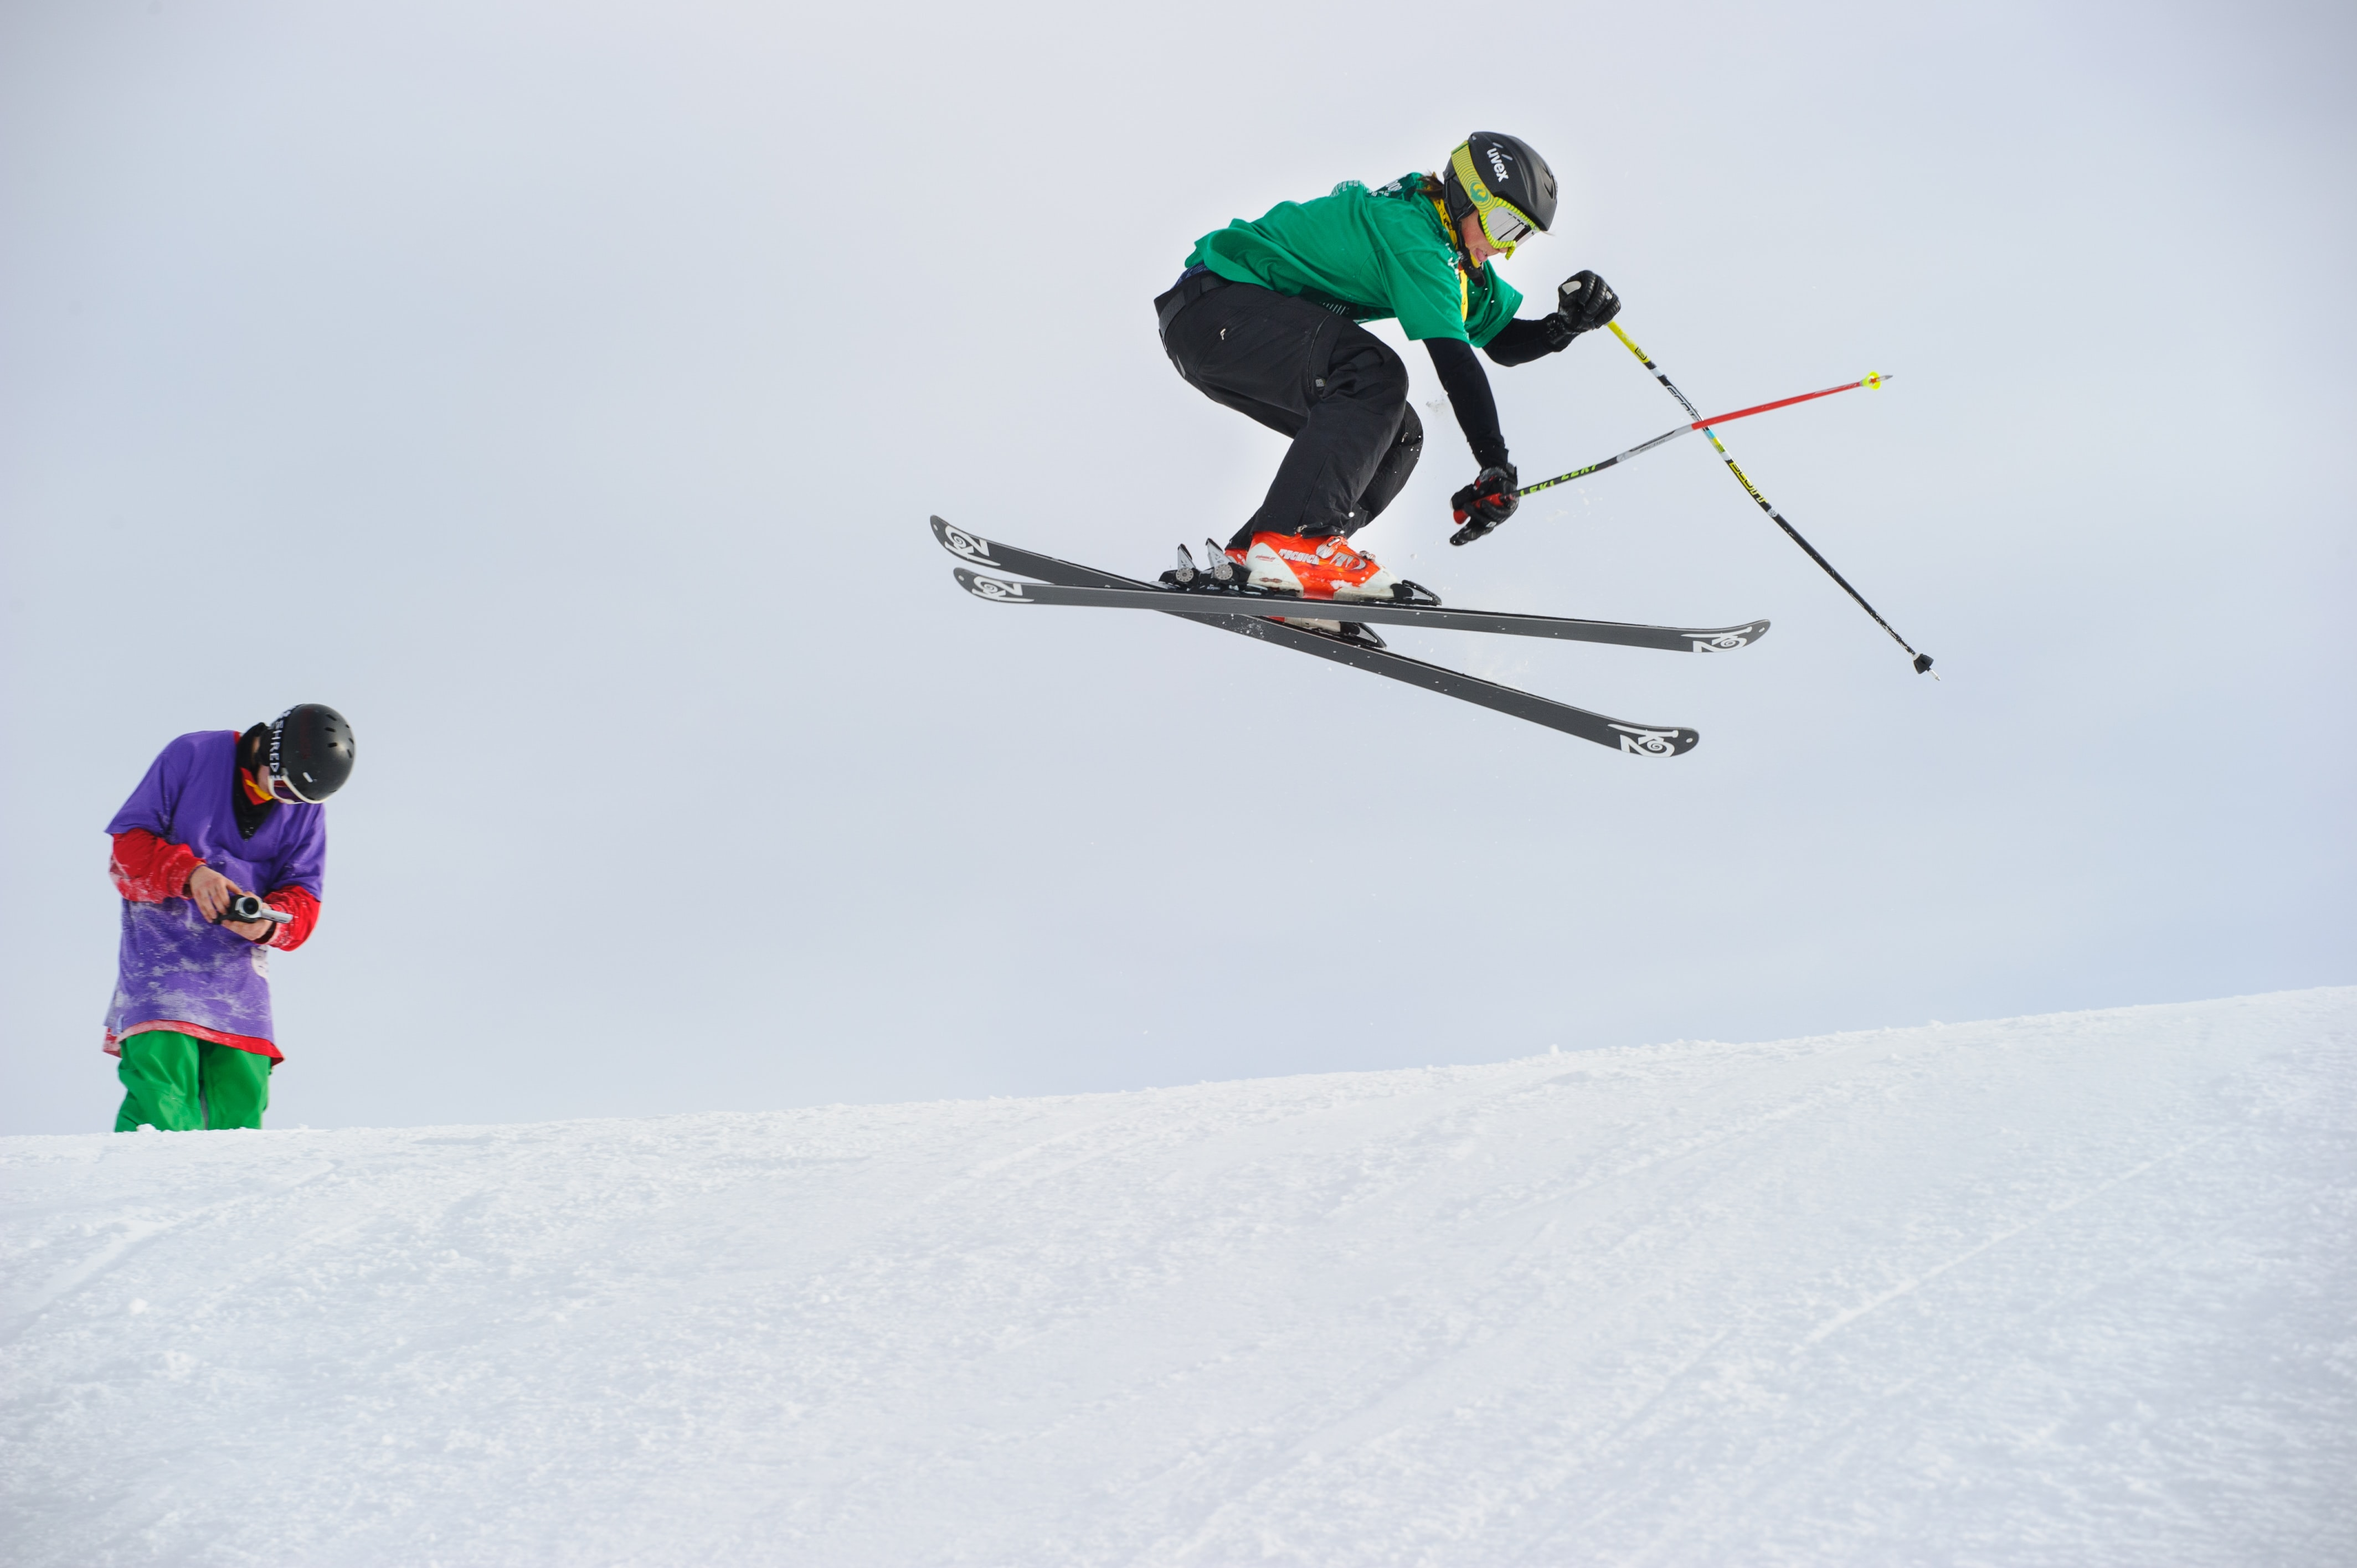 man riding snow skis